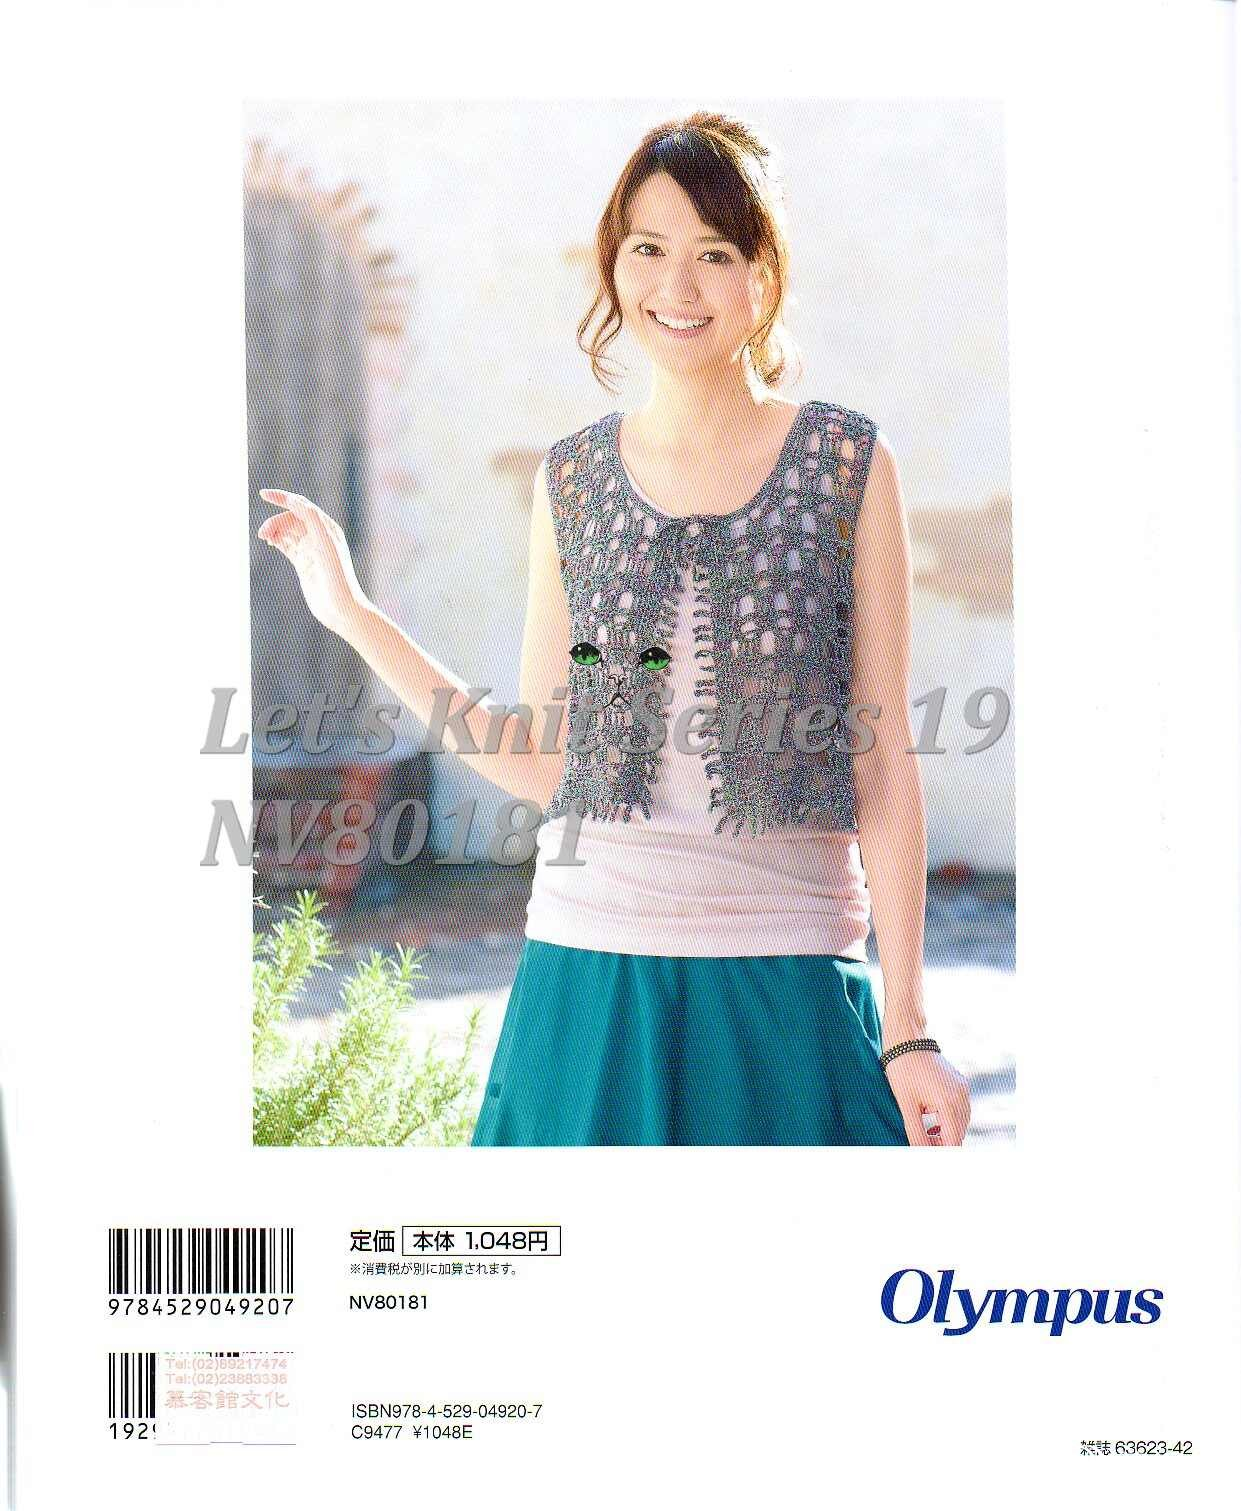 Let\'s Knit Series 19 NV80181197.jpg